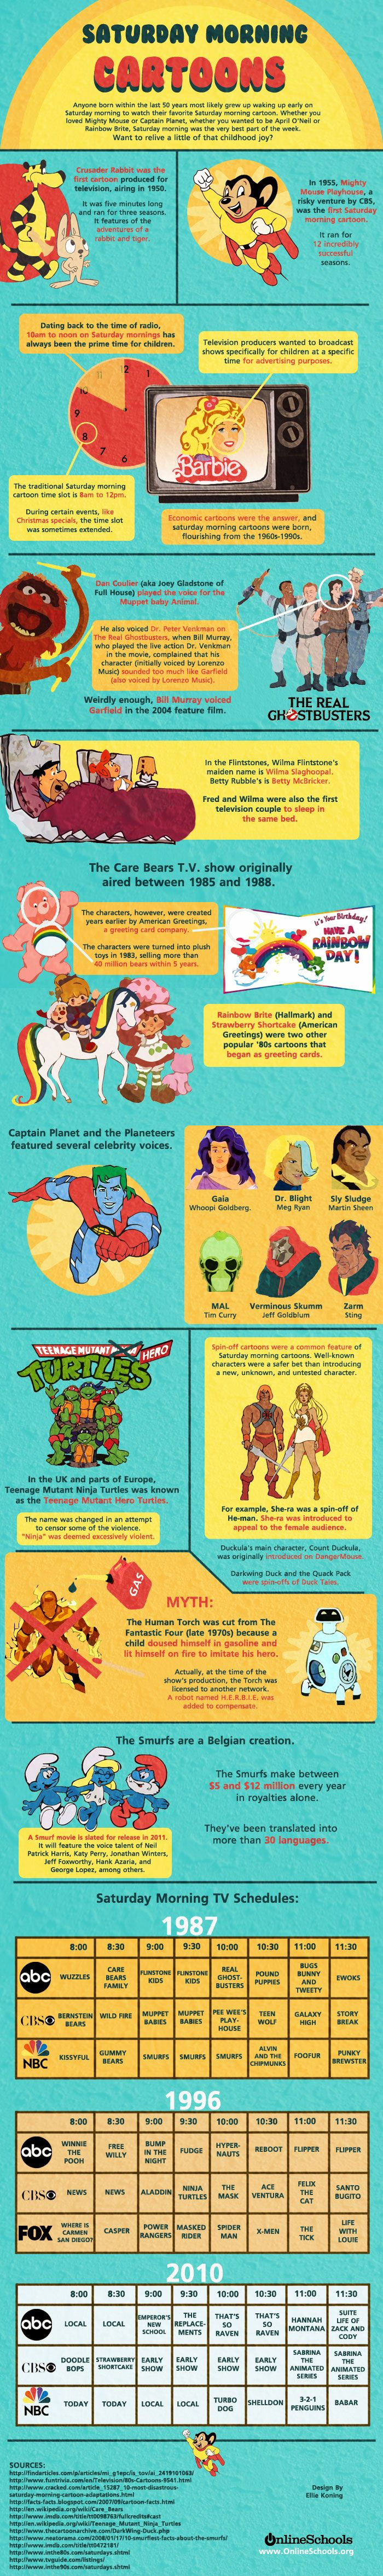 History of Saturday Morning Cartoons [Infographic | 80's